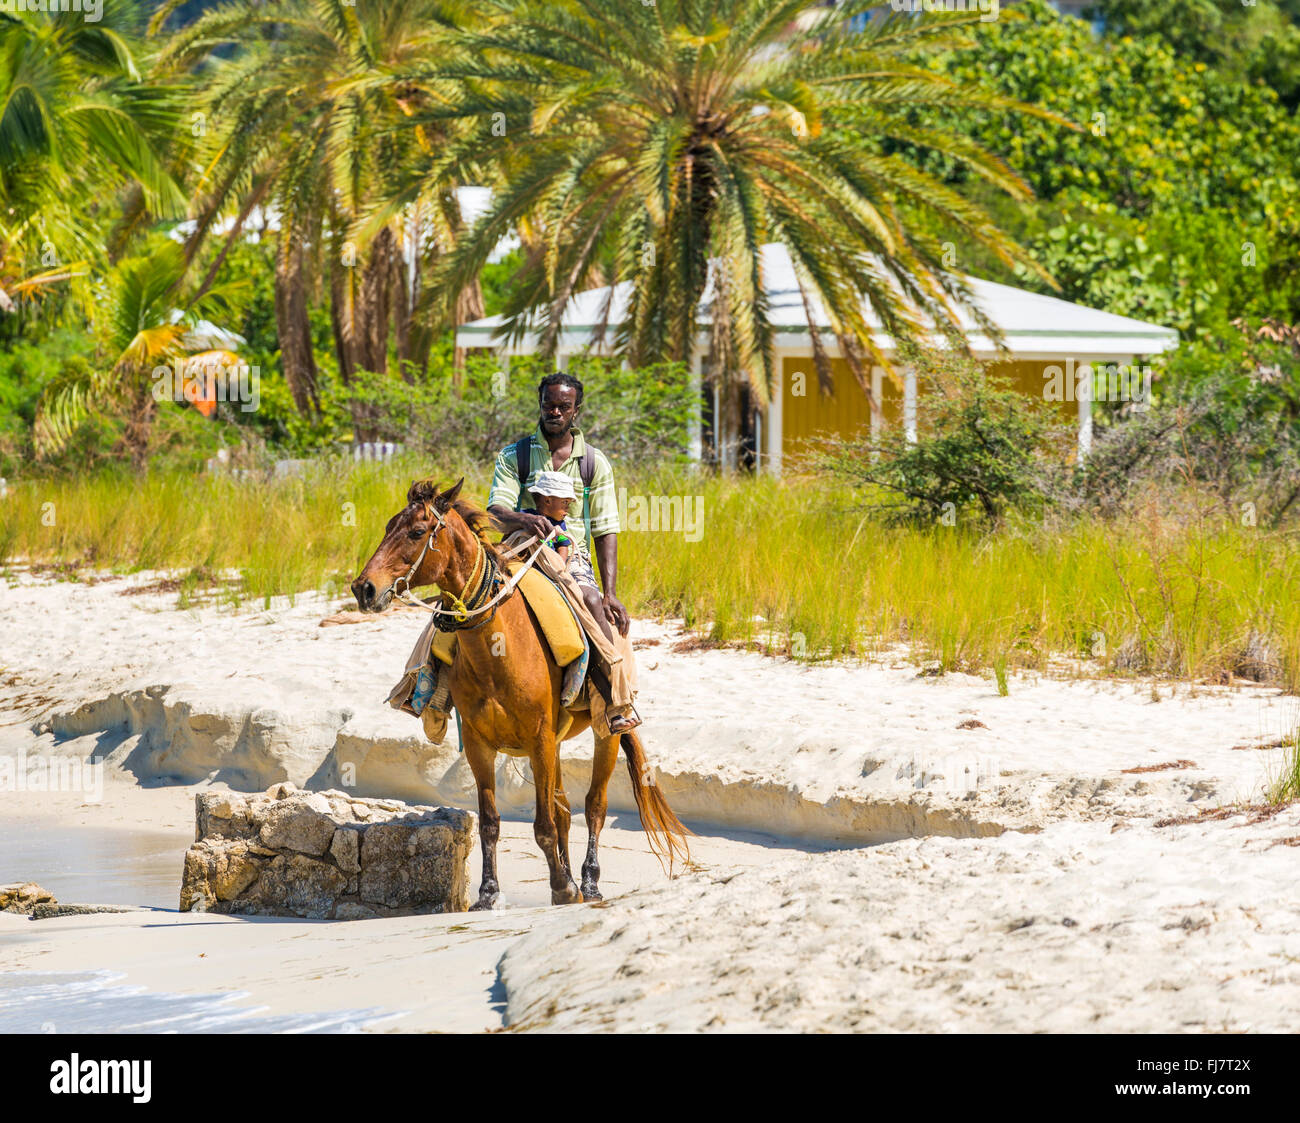 Local man with a small child riding a horse on the beach, Dickenson Bay, Antigua, Antigua and Barbuda, West Indies - Stock Image